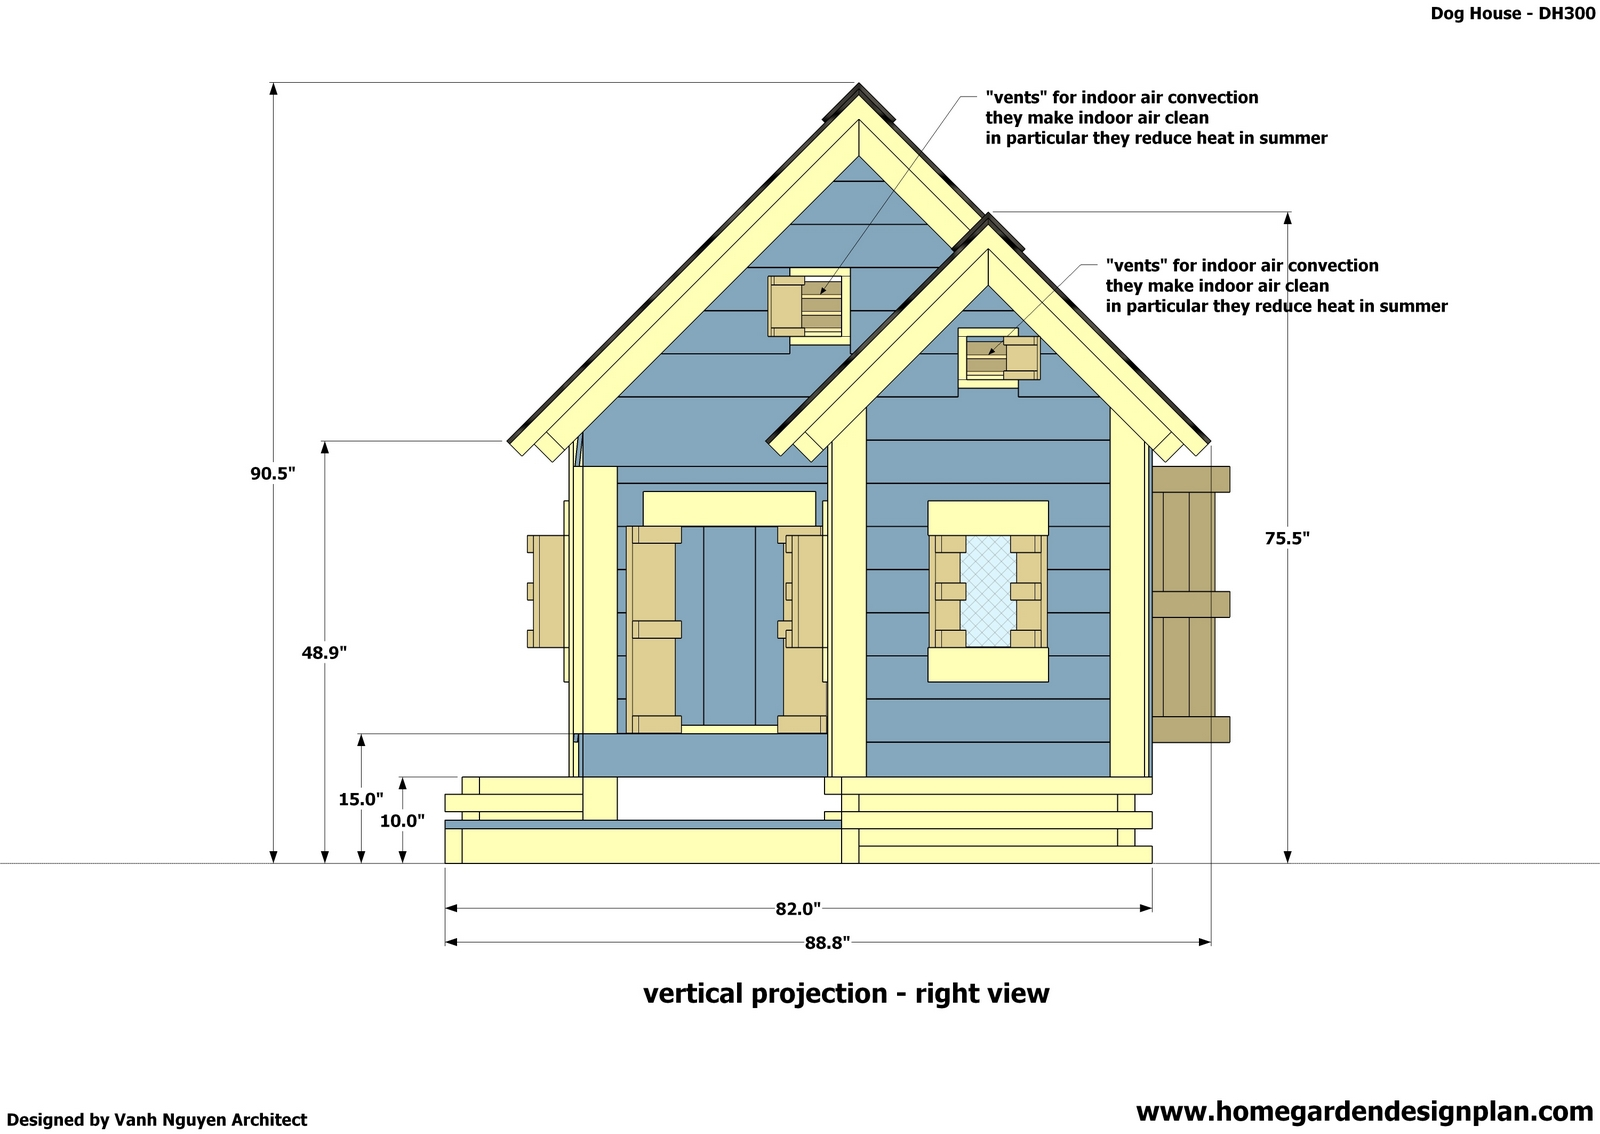 Home garden plans dh300 dog house plans free how to for Home design online free